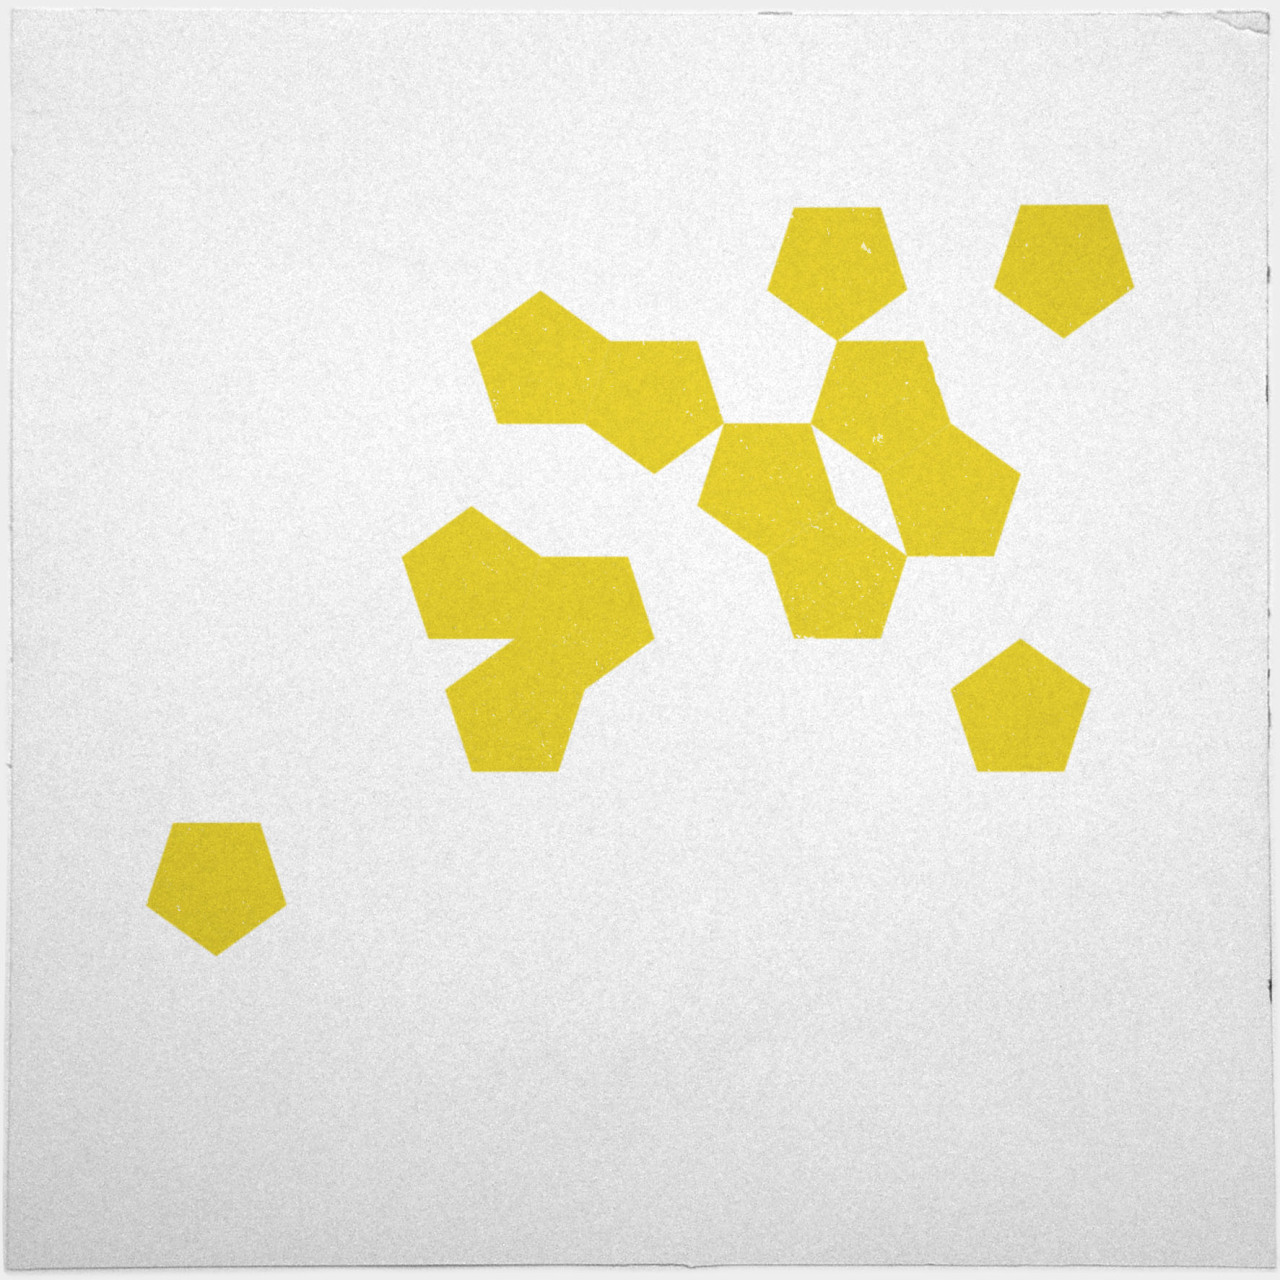 geometrydaily:  #445 Sun spots – A new minimal geometric composition each day